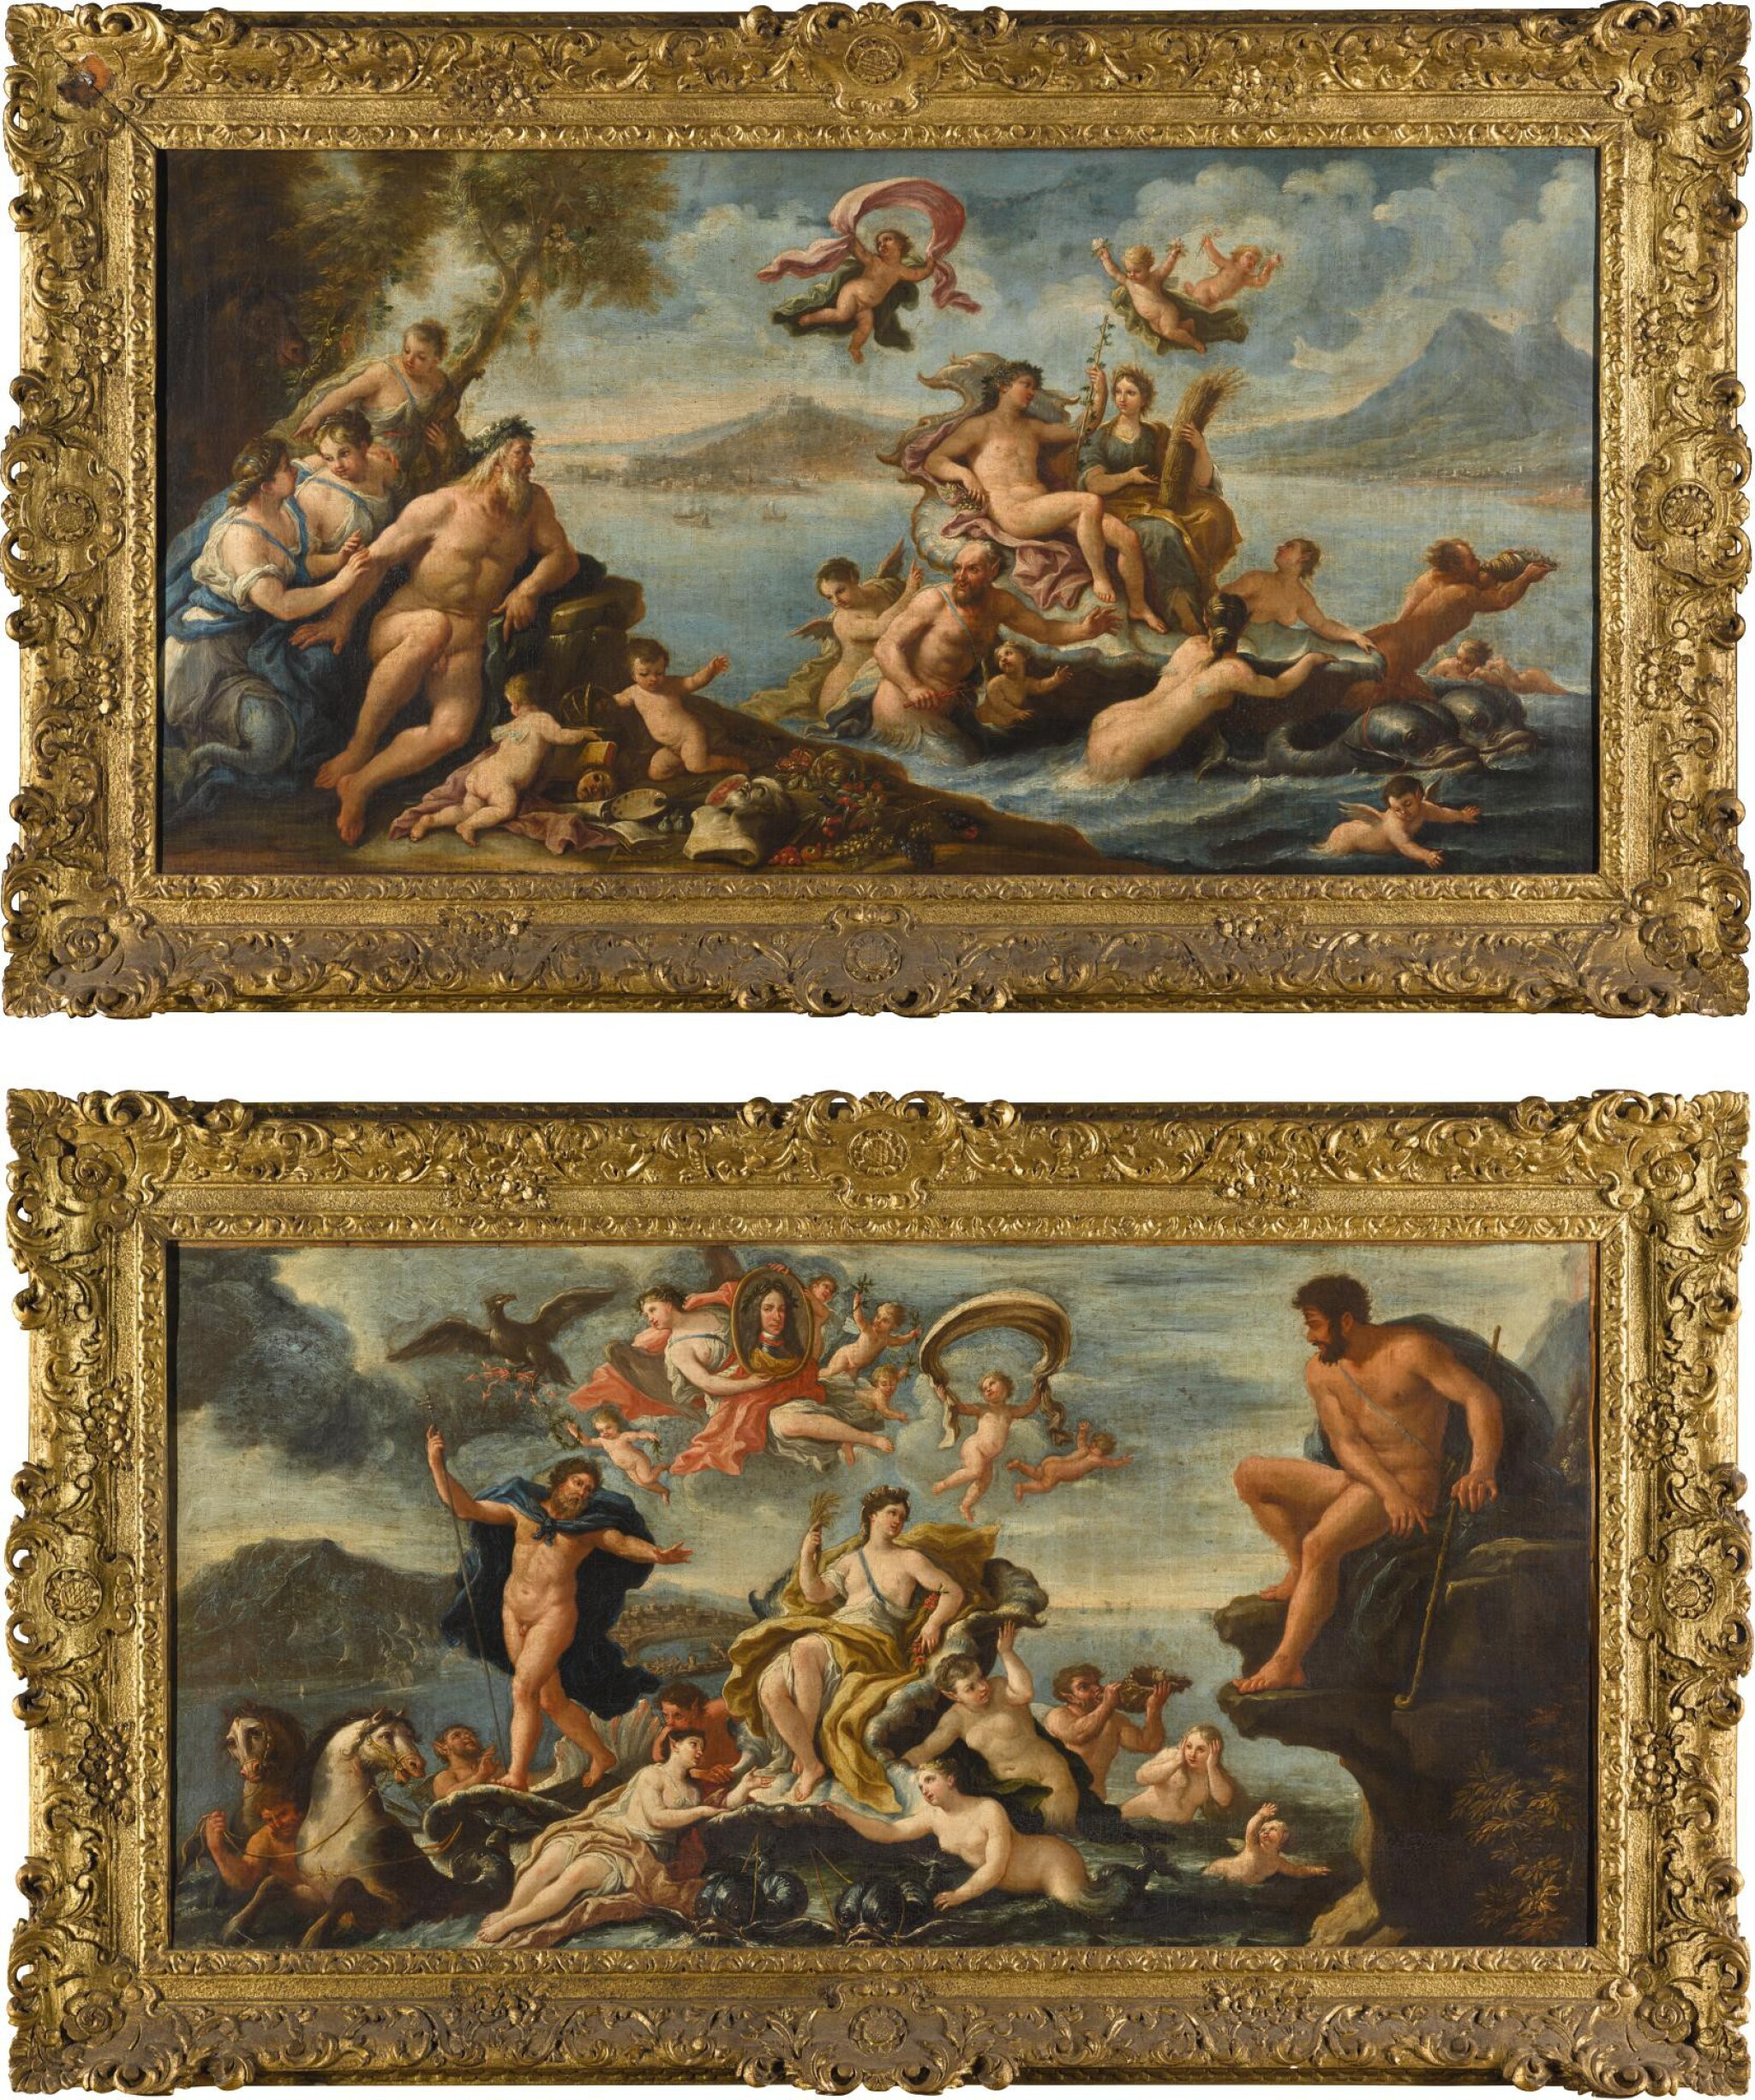 View full screen - View 1 of Lot 9. CIRCLE OF PAOLO DE' MATTEIS | AN ALLEGORY OF PROSPERITY AND THE ARTS IN THE CITY OF NAPLES; AND TRIUMPH OF GALATEA WITH A VIEW OF MESSINA BEYOND, AND A PORTRAIT OF CHARLES VI (1685-1740), HOLY ROMAN EMPEROR, HELD ALOFT BY VICTORY.